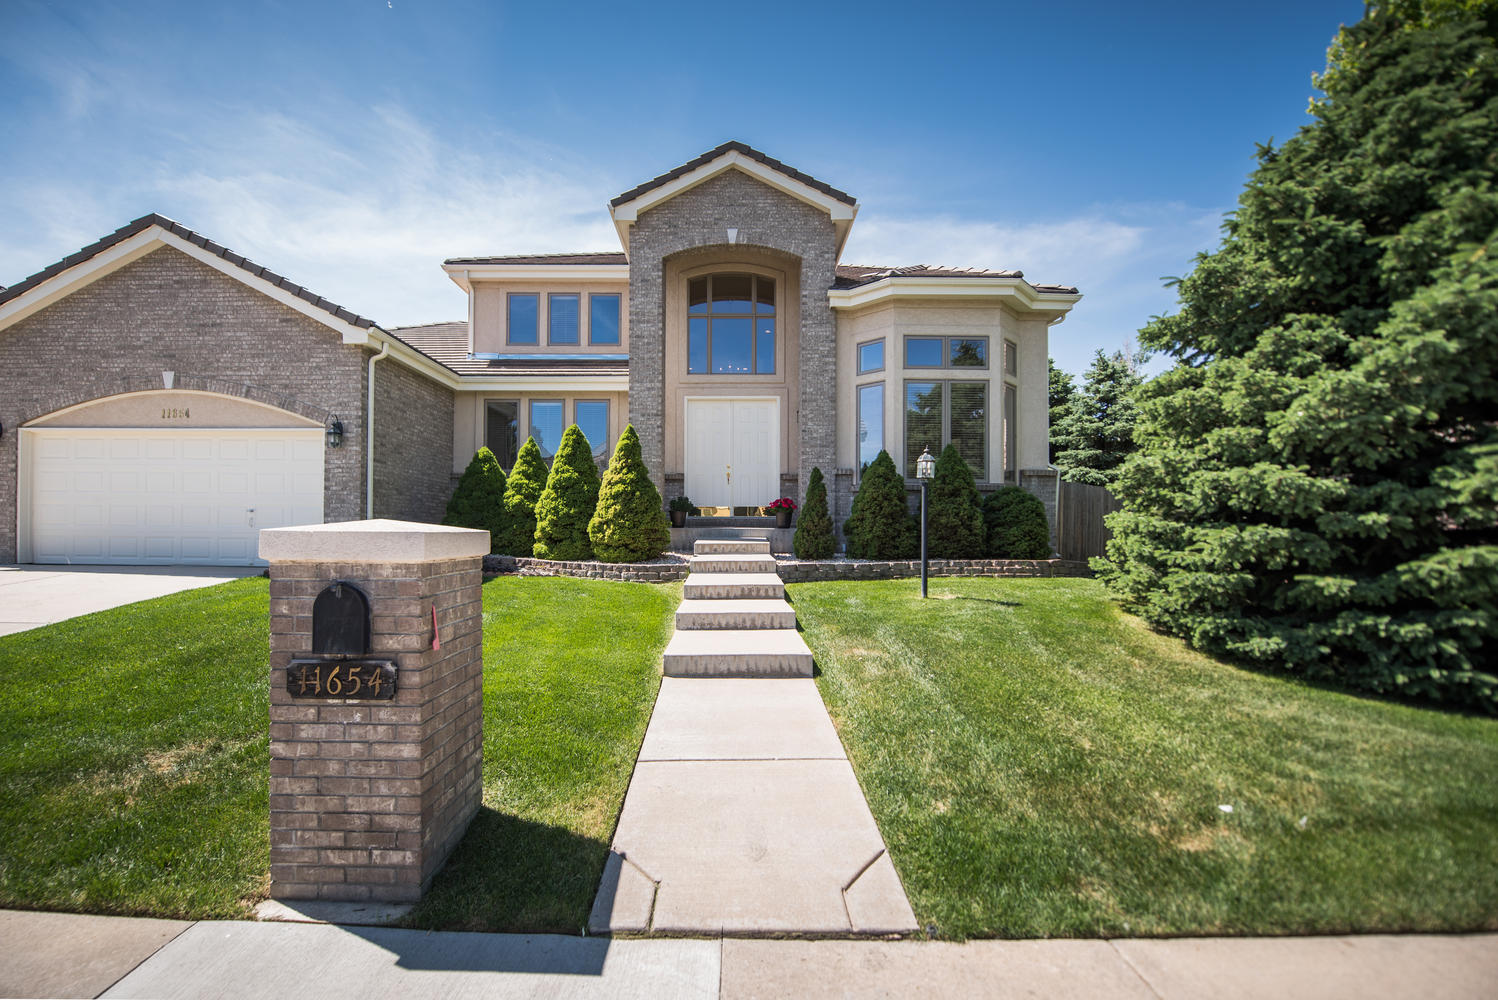 11654 E Berry Ave, Englewood, CO 80111